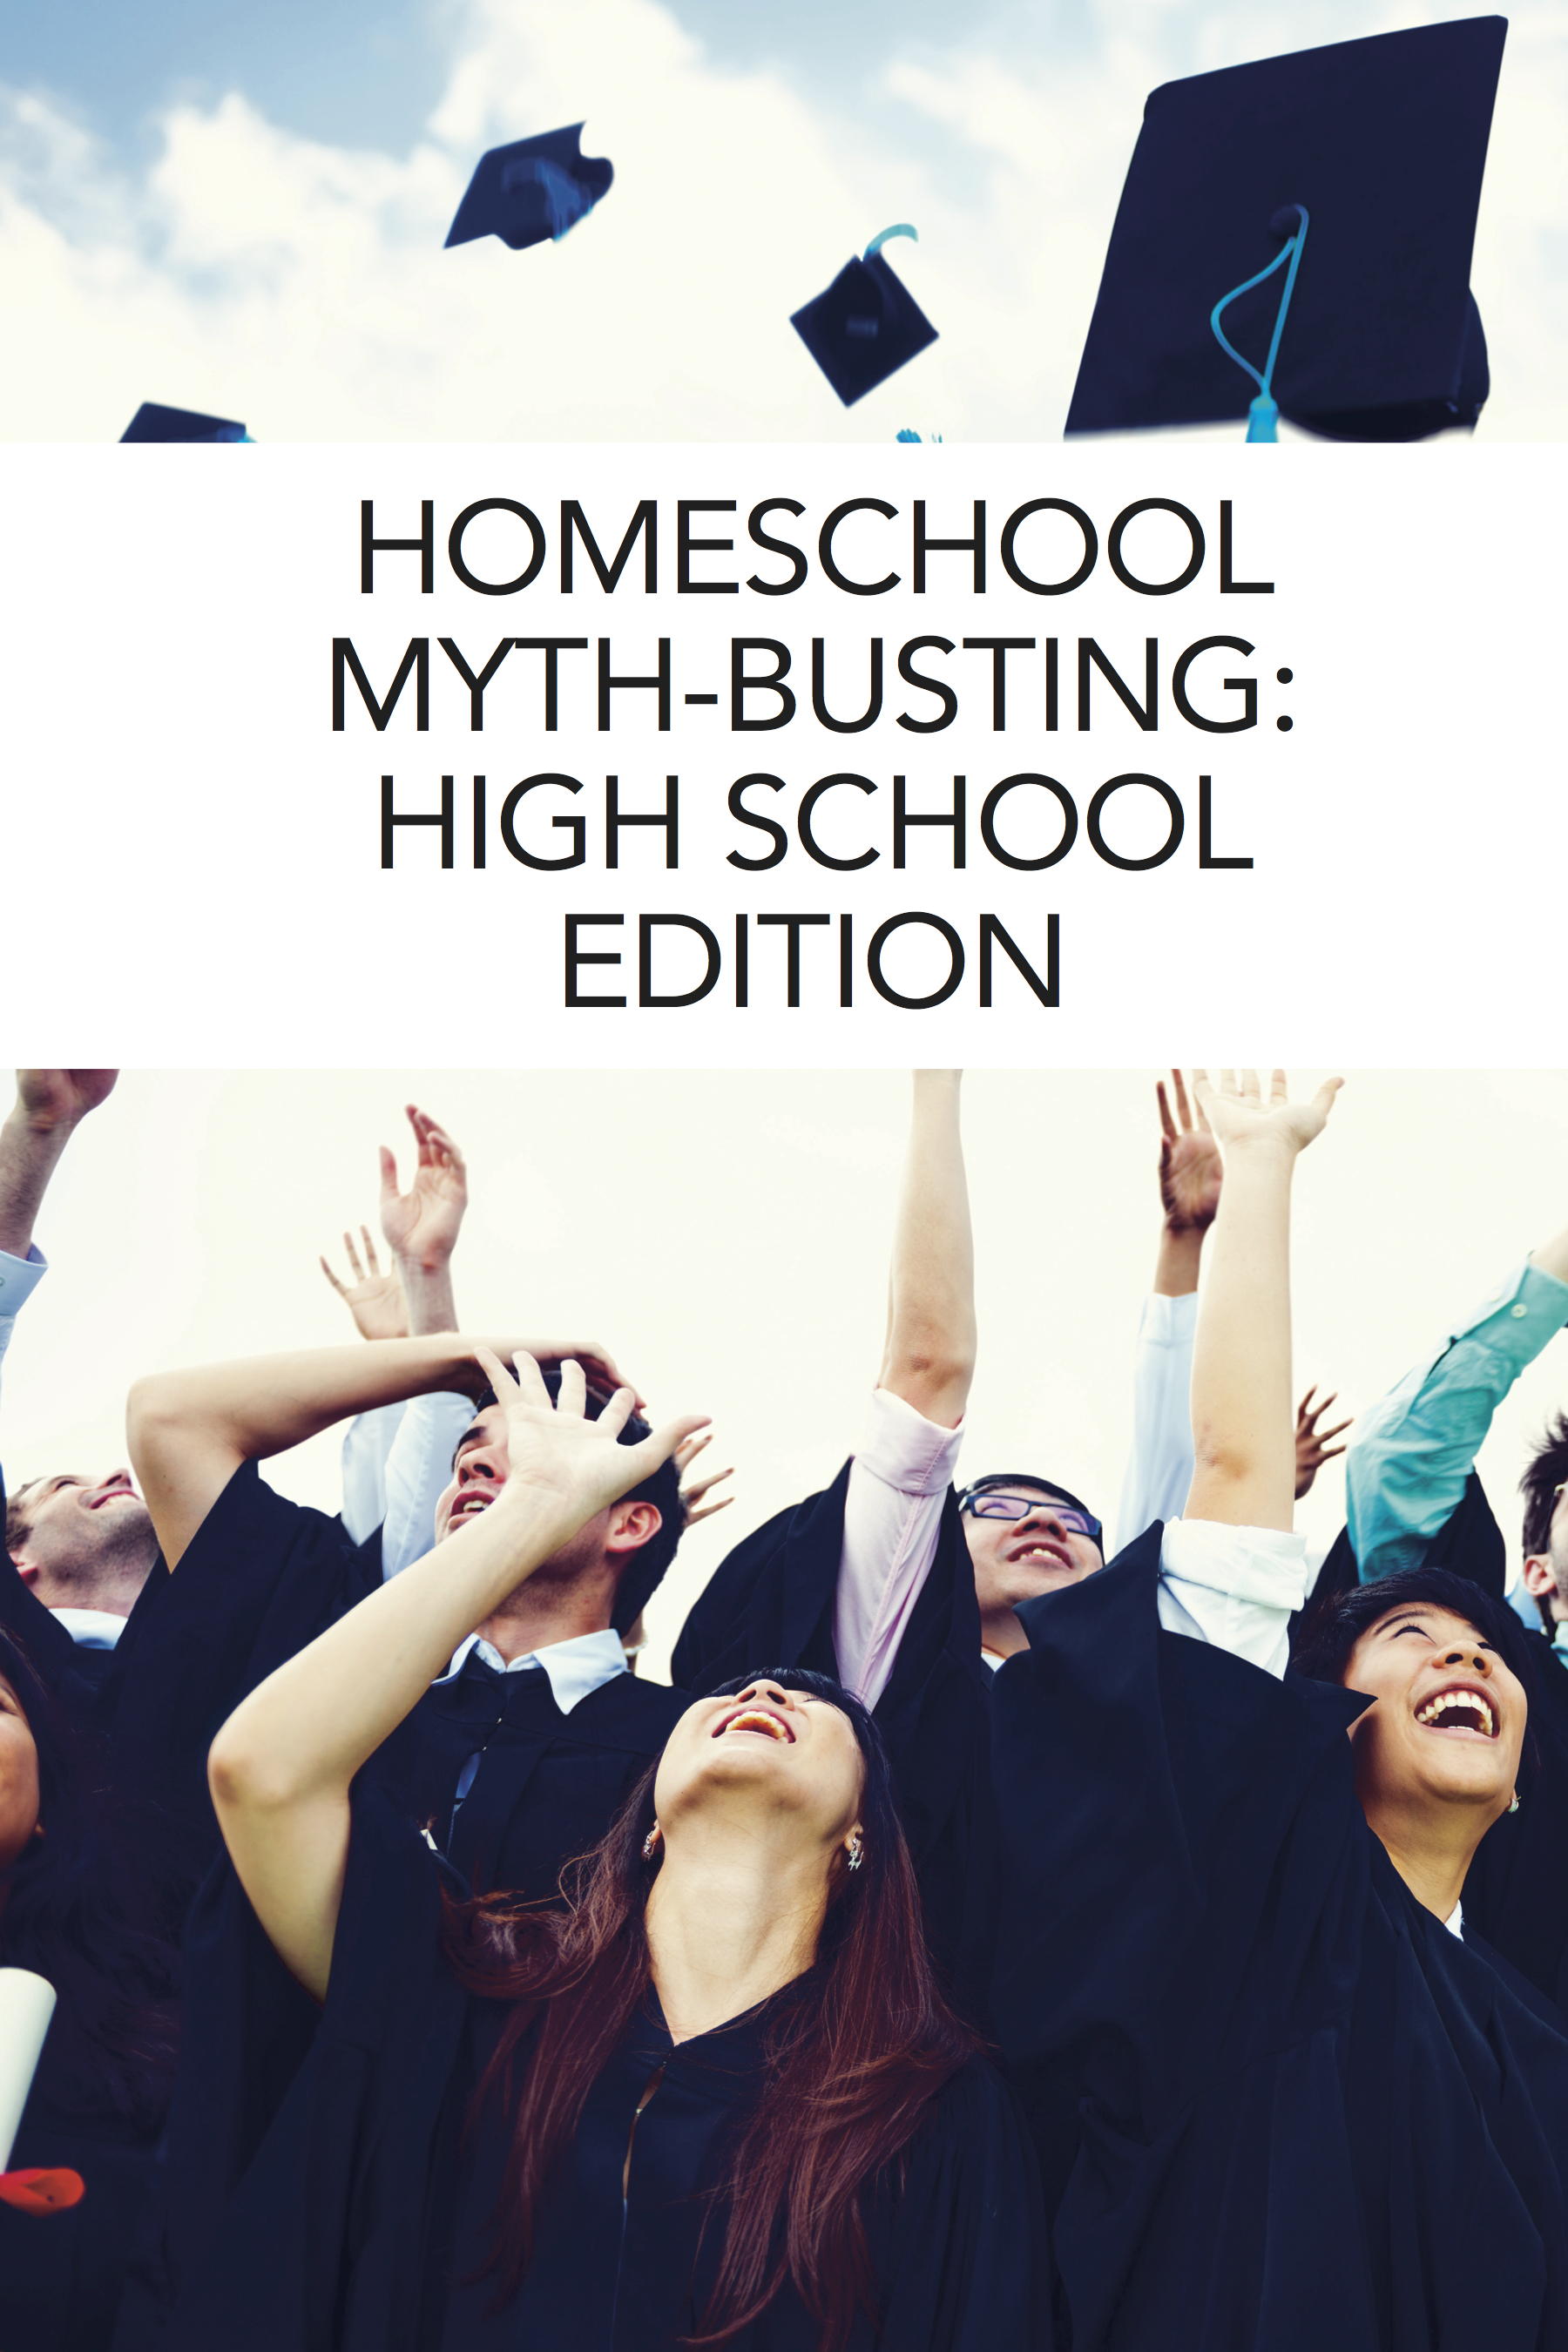 Common myths about homeschooling high school -- busted!